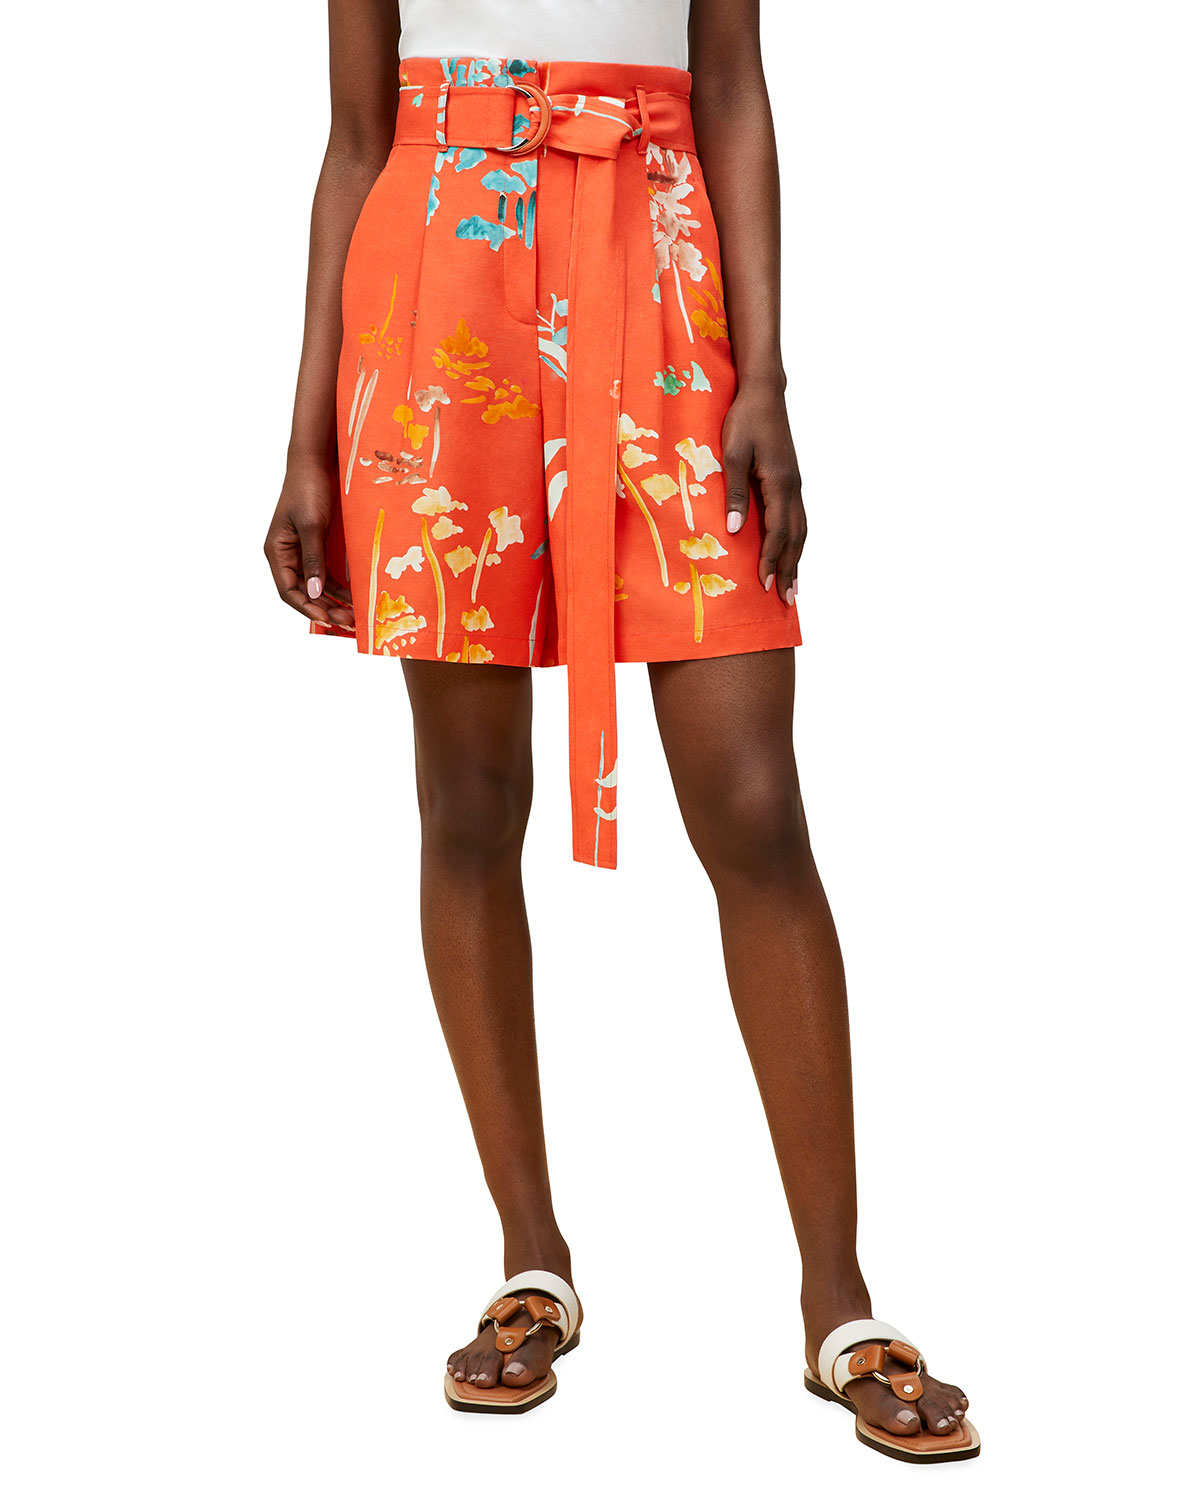 Degraw Belted Shorts